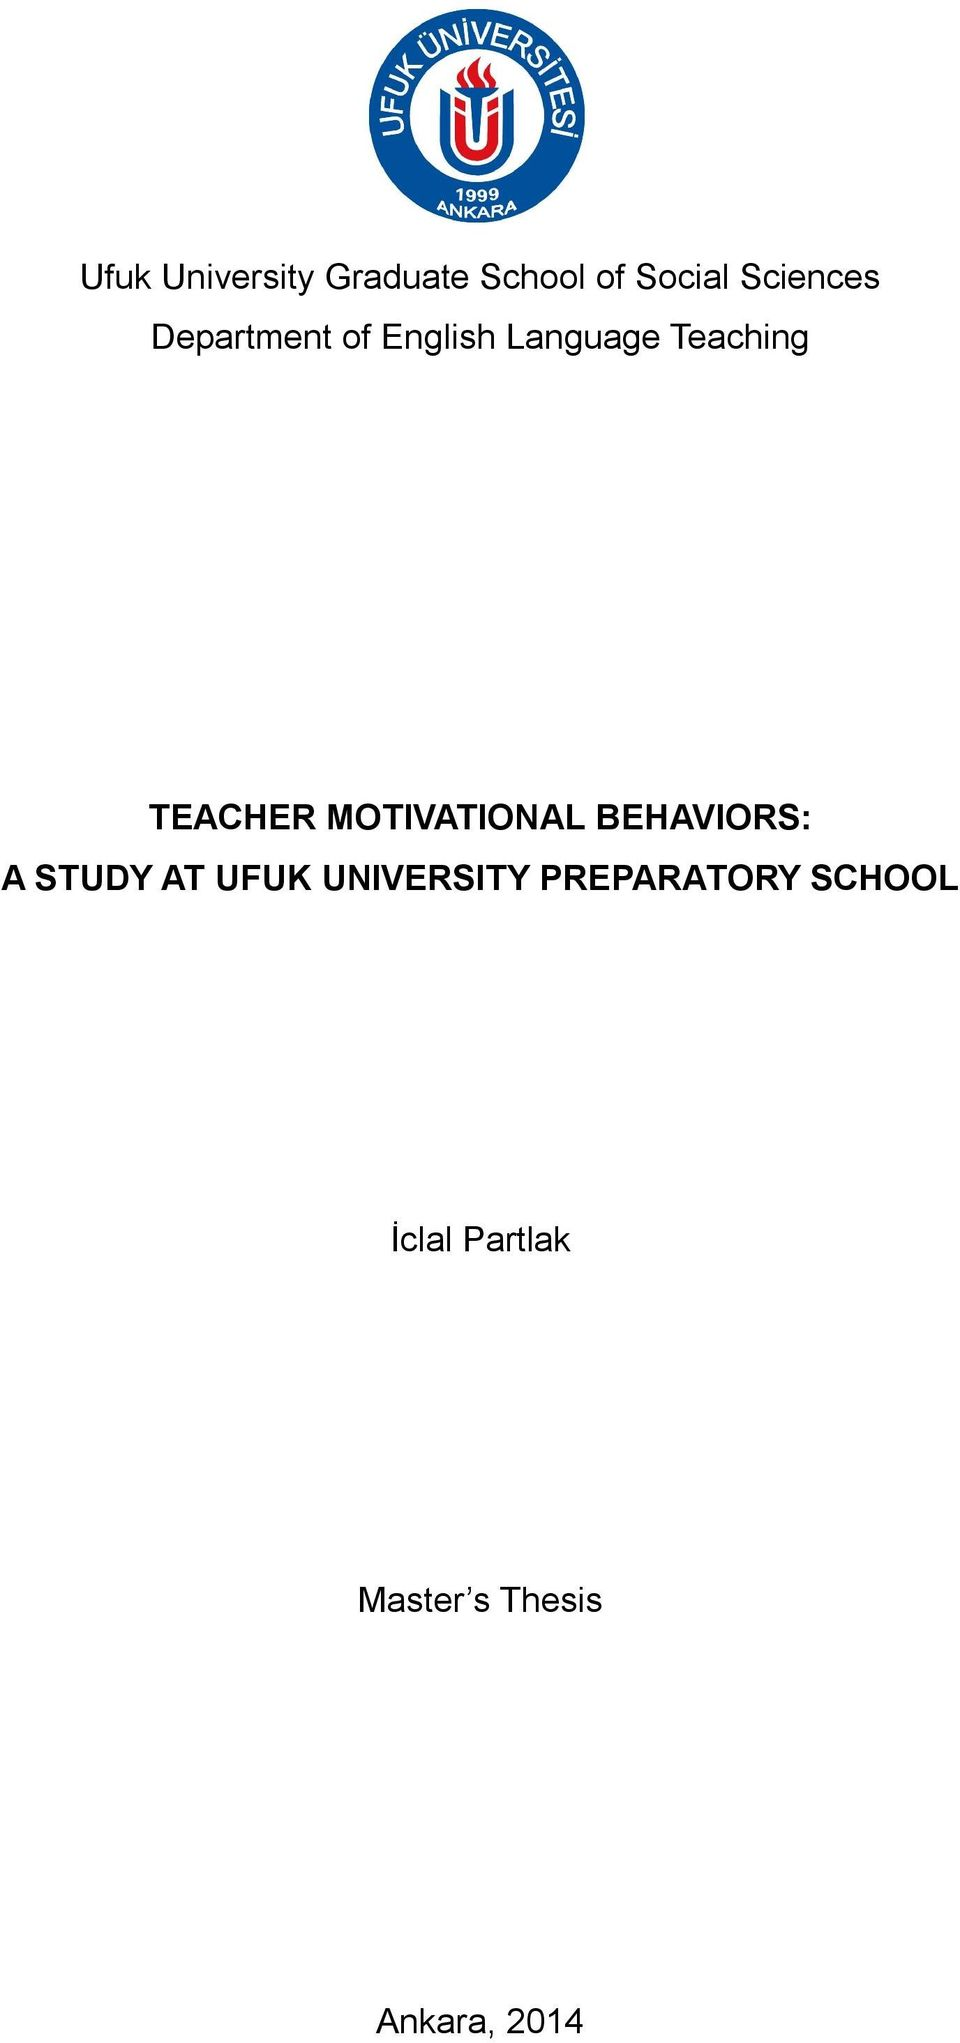 MOTIVATIONAL BEHAVIORS: A STUDY AT UFUK UNIVERSITY